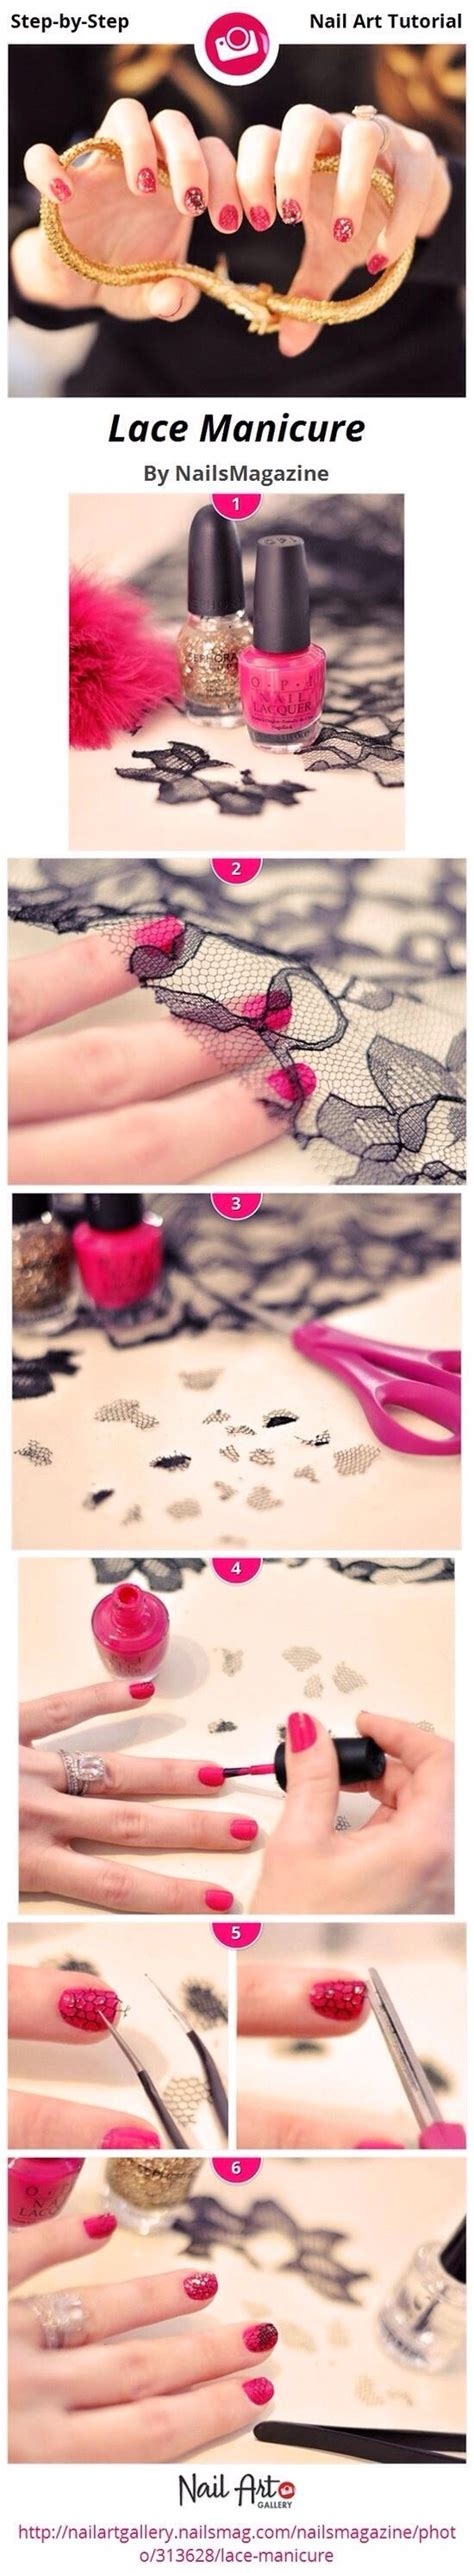 Cutie Sabrina Lace diy and amazing fashion projects with lace and